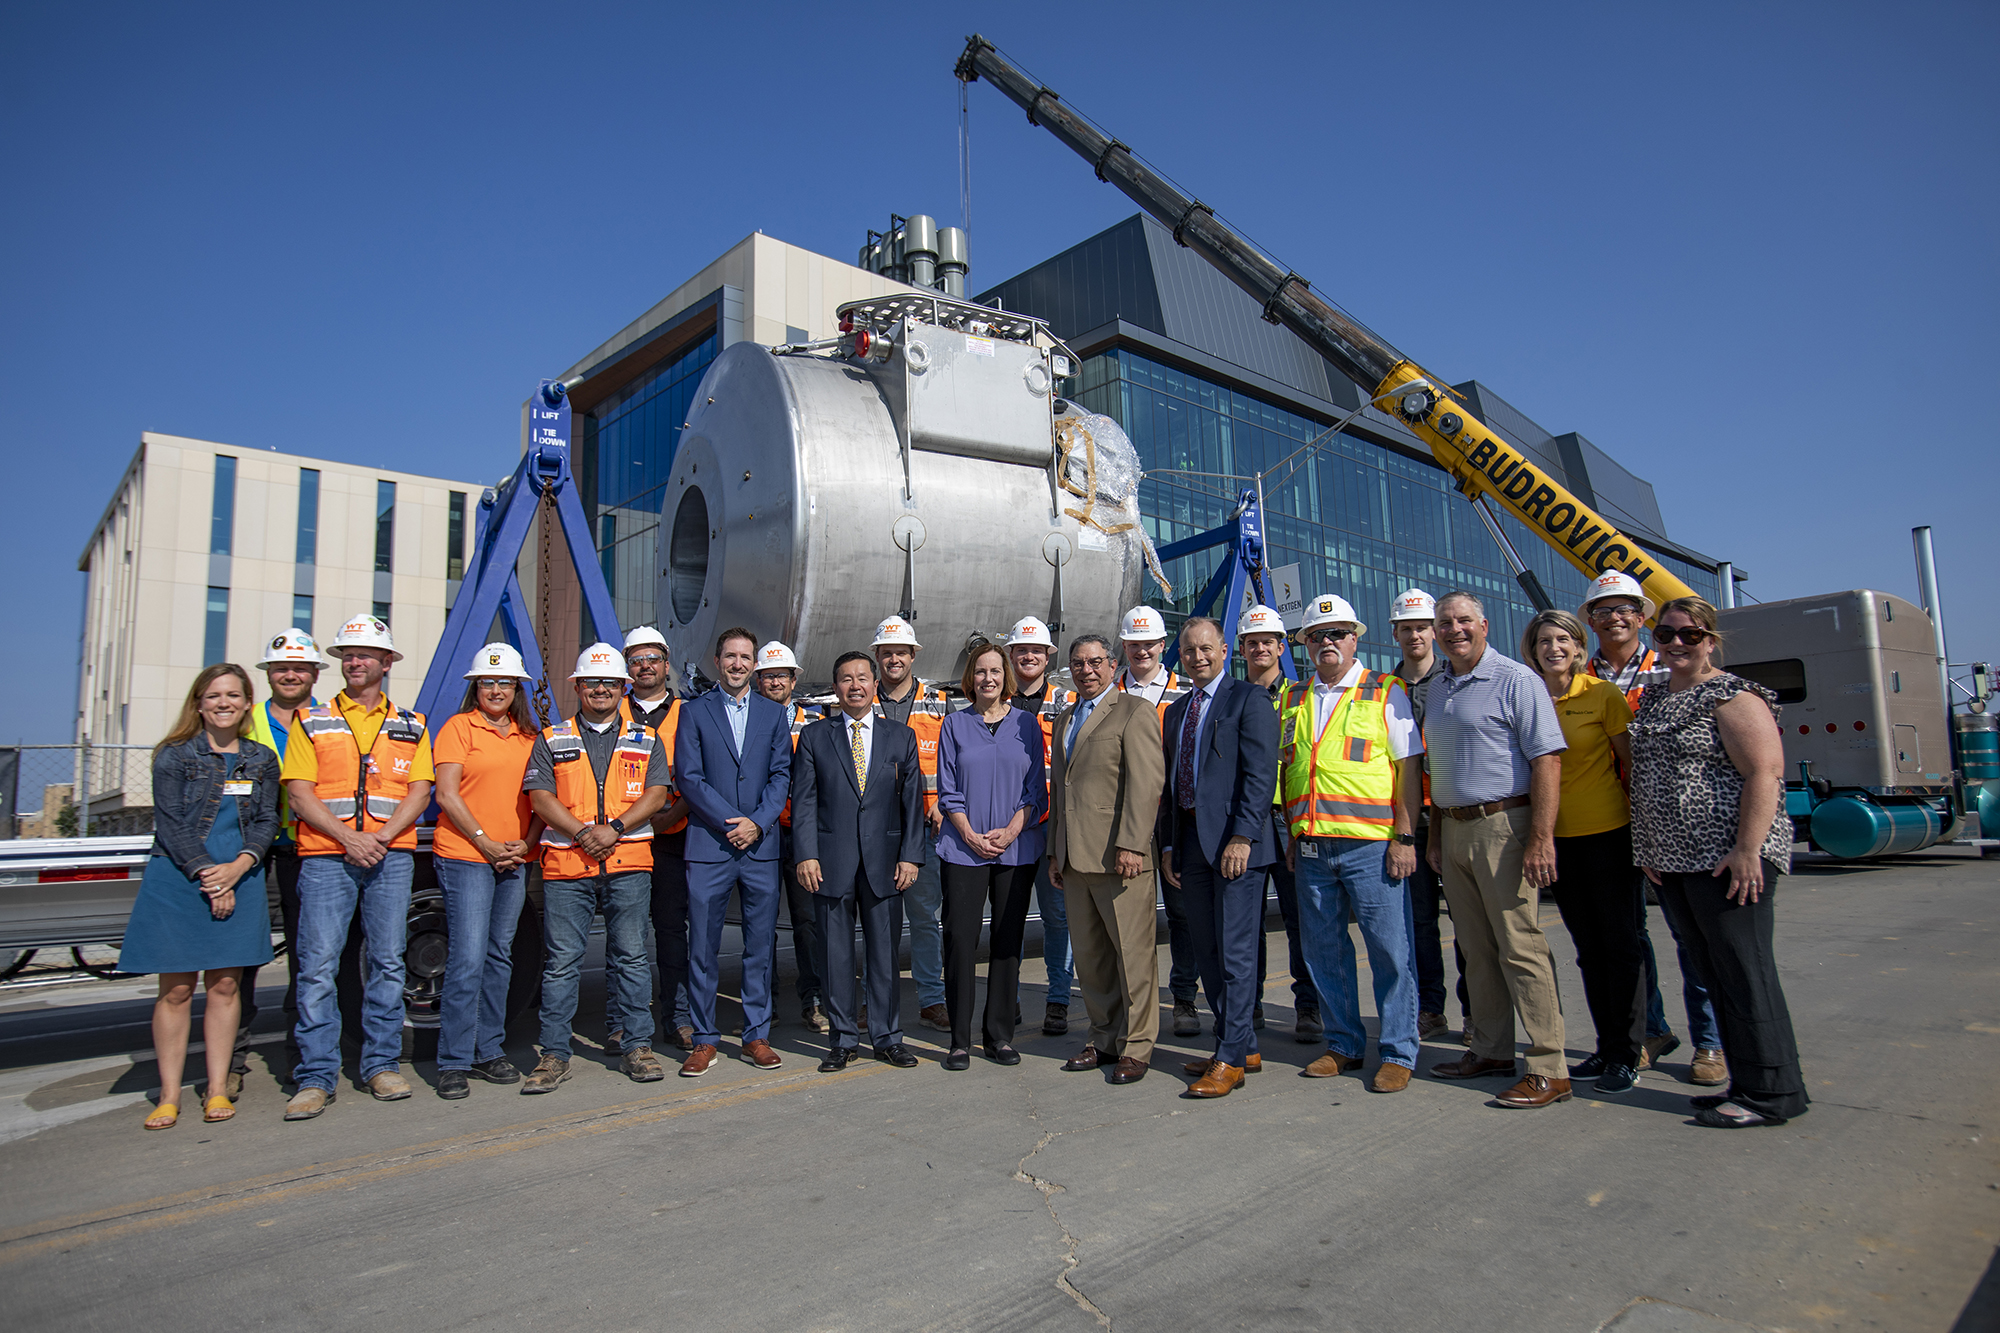 group photo in front of 7T MRI